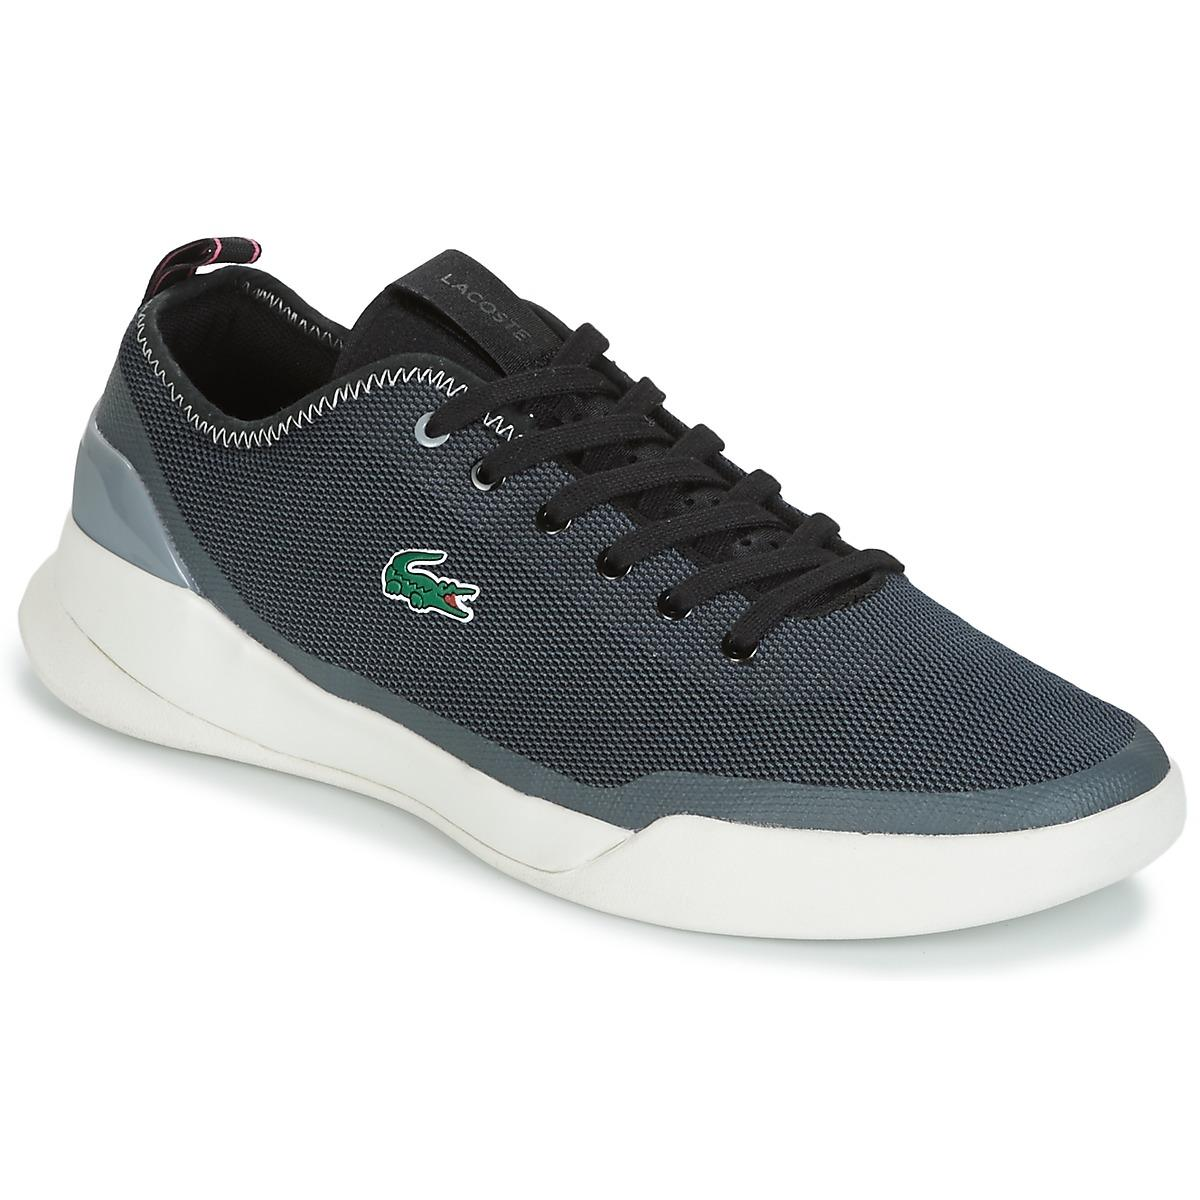 ad4709bfb15e7e Lacoste Lt Dual 118 1 Men s Shoes (trainers) In Black in Black for ...